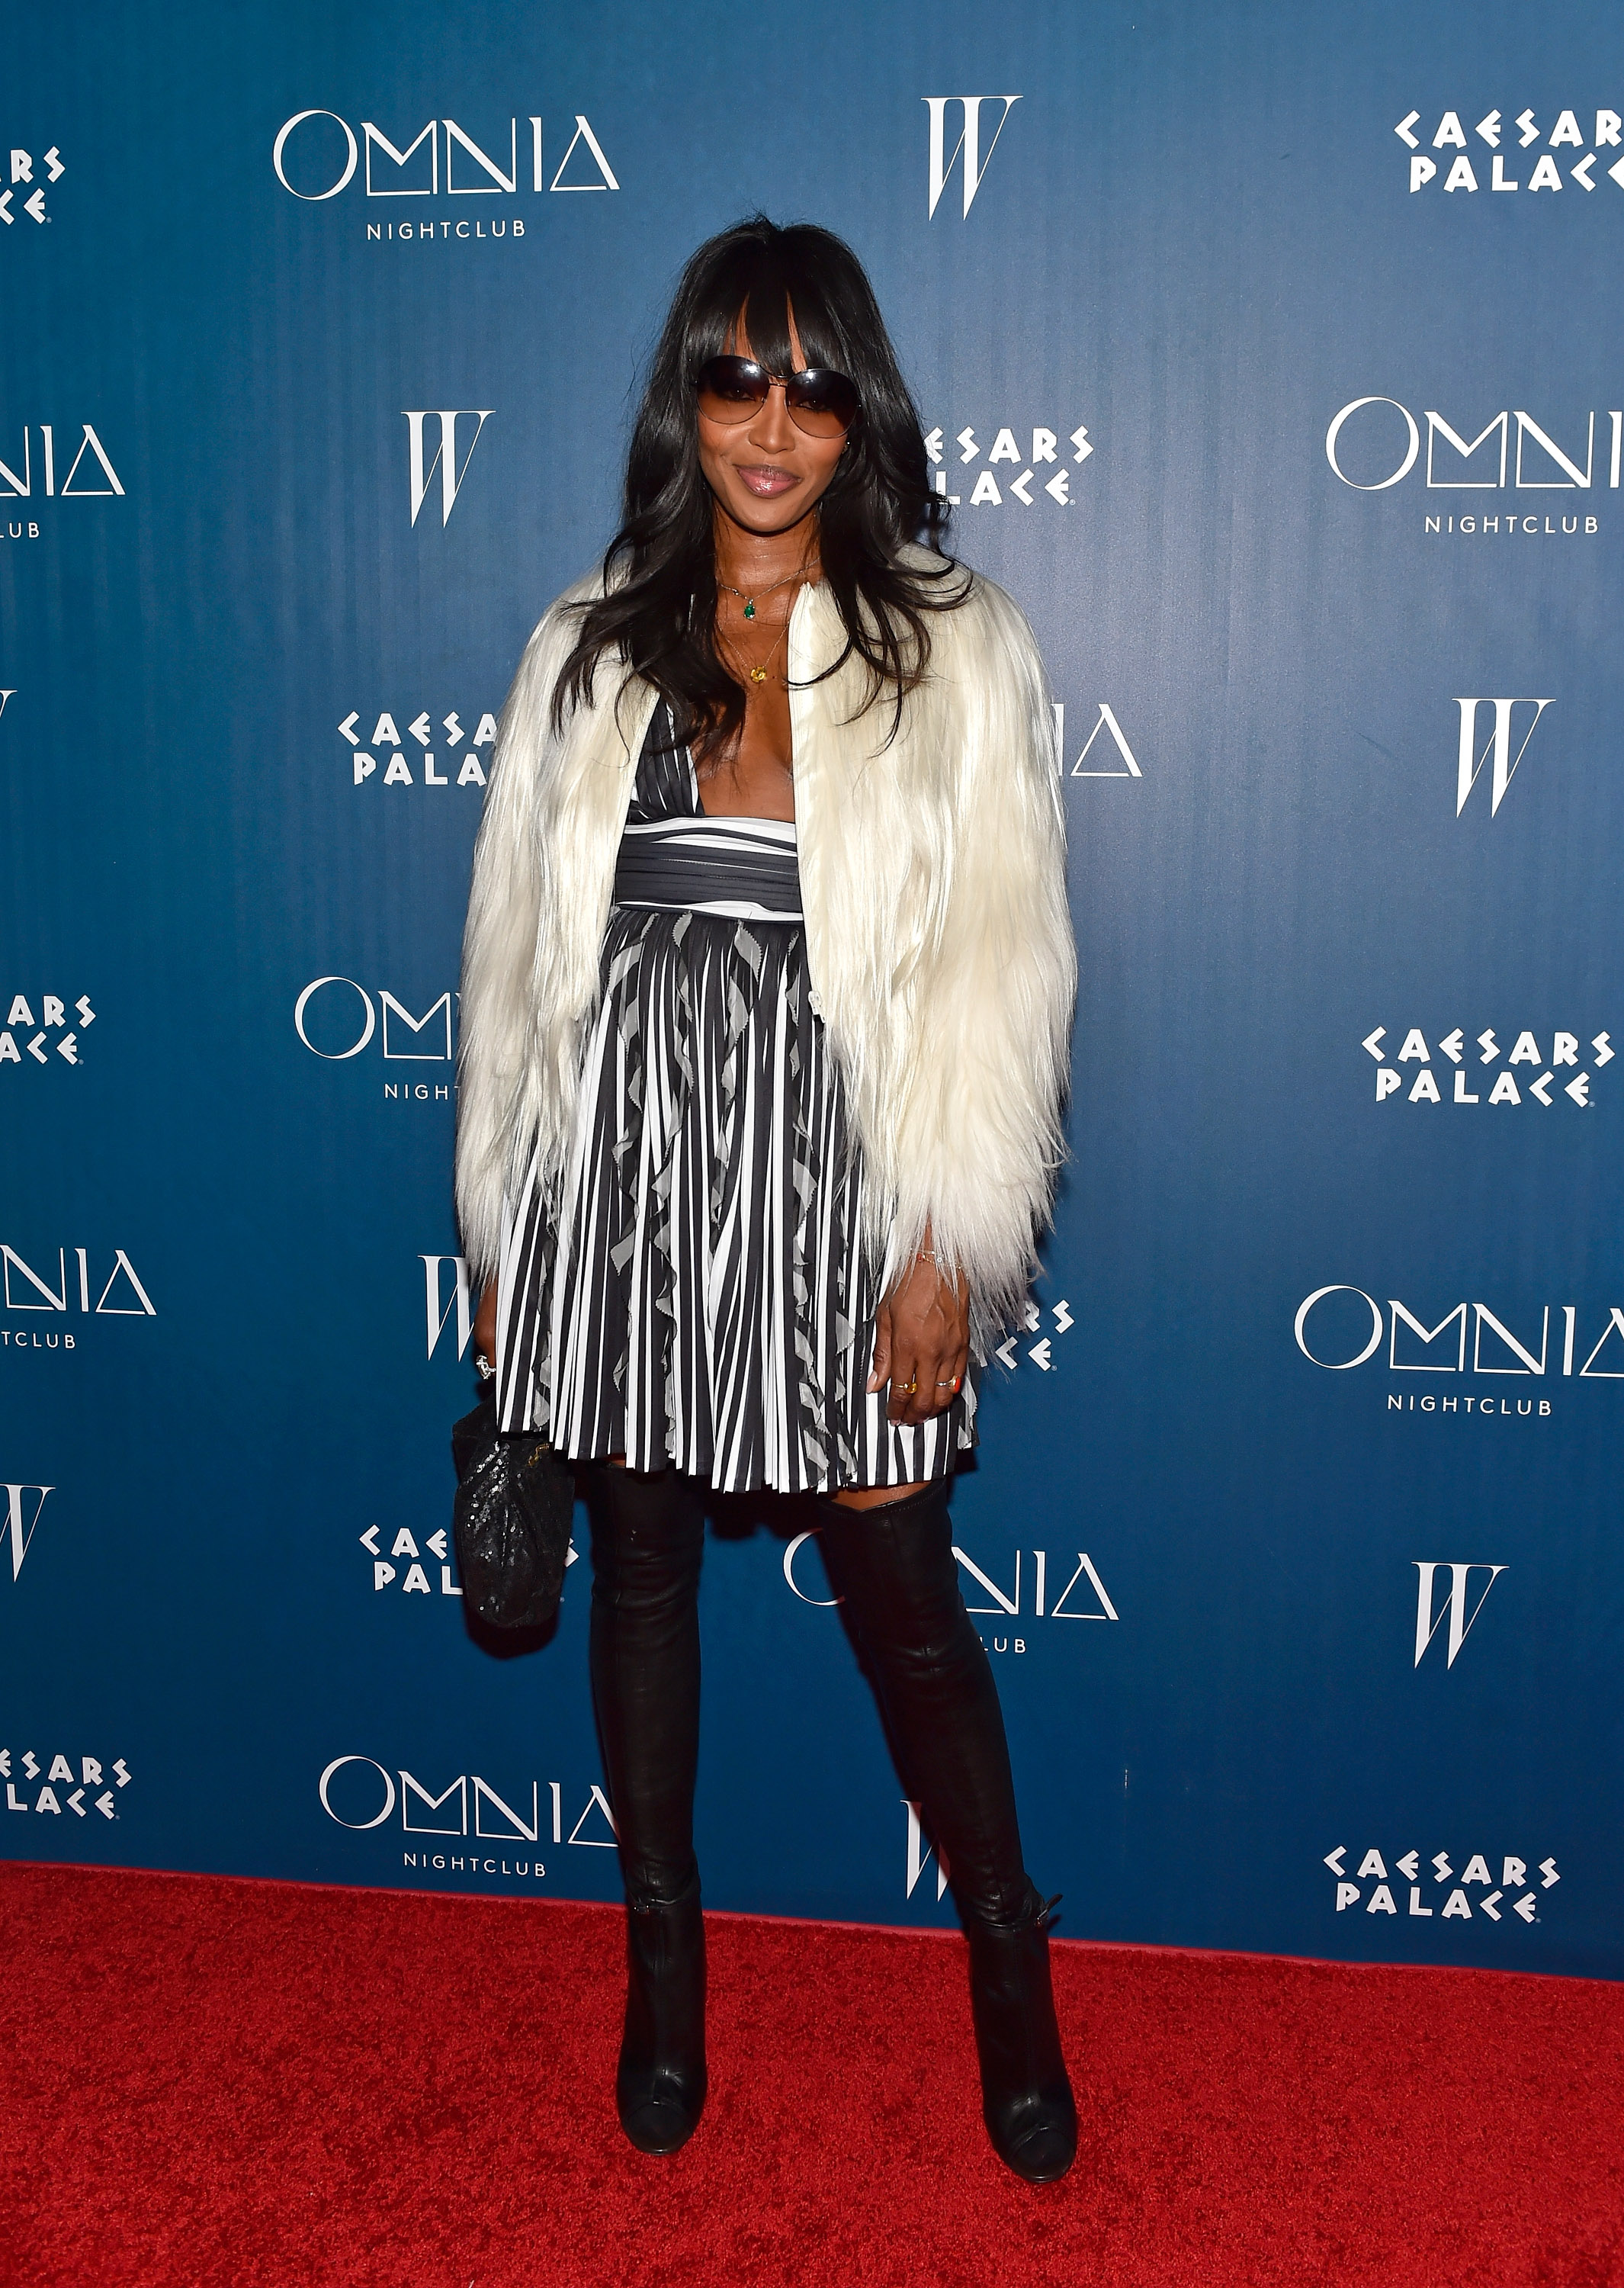 Naomi Campbell OMNIA Grand Opening Red Carpet